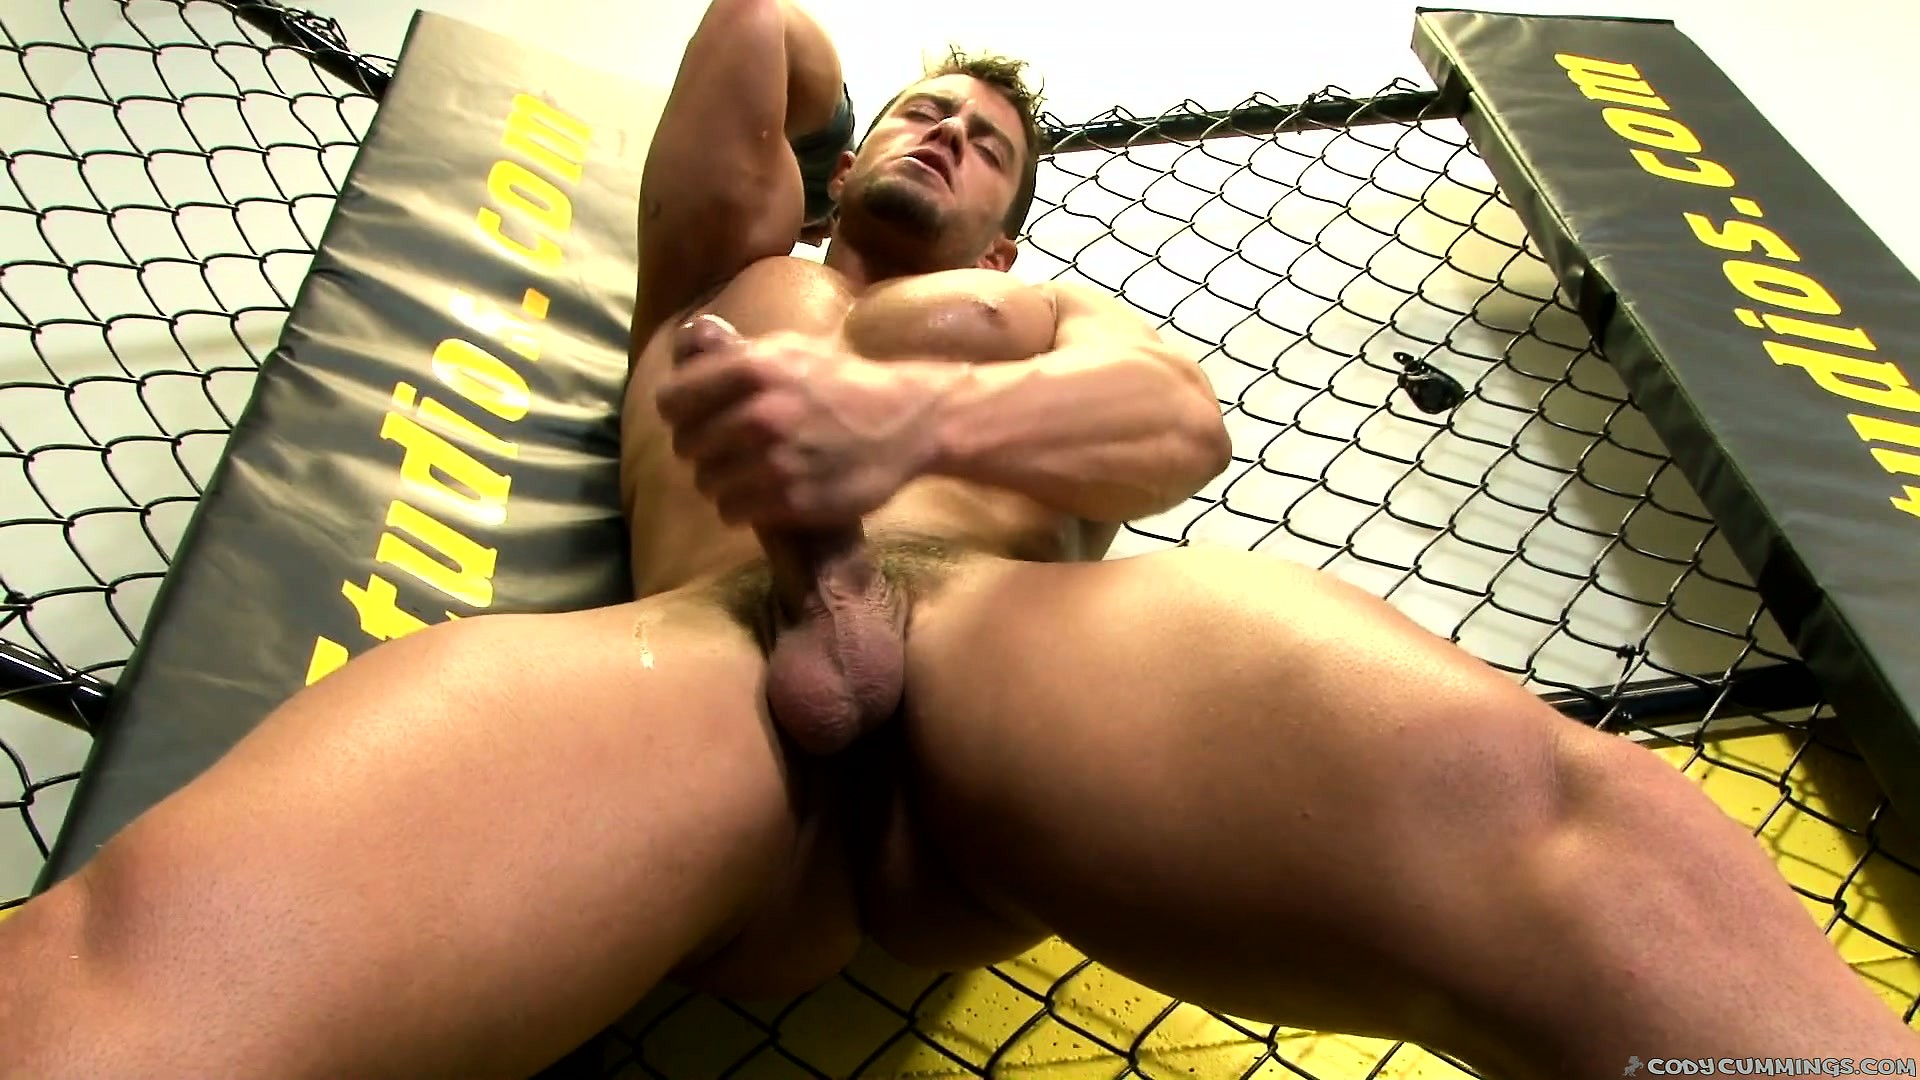 Porno Video of In The Fighting Cage, A Young Stud Displays His Awesome Body And His Big Shaft